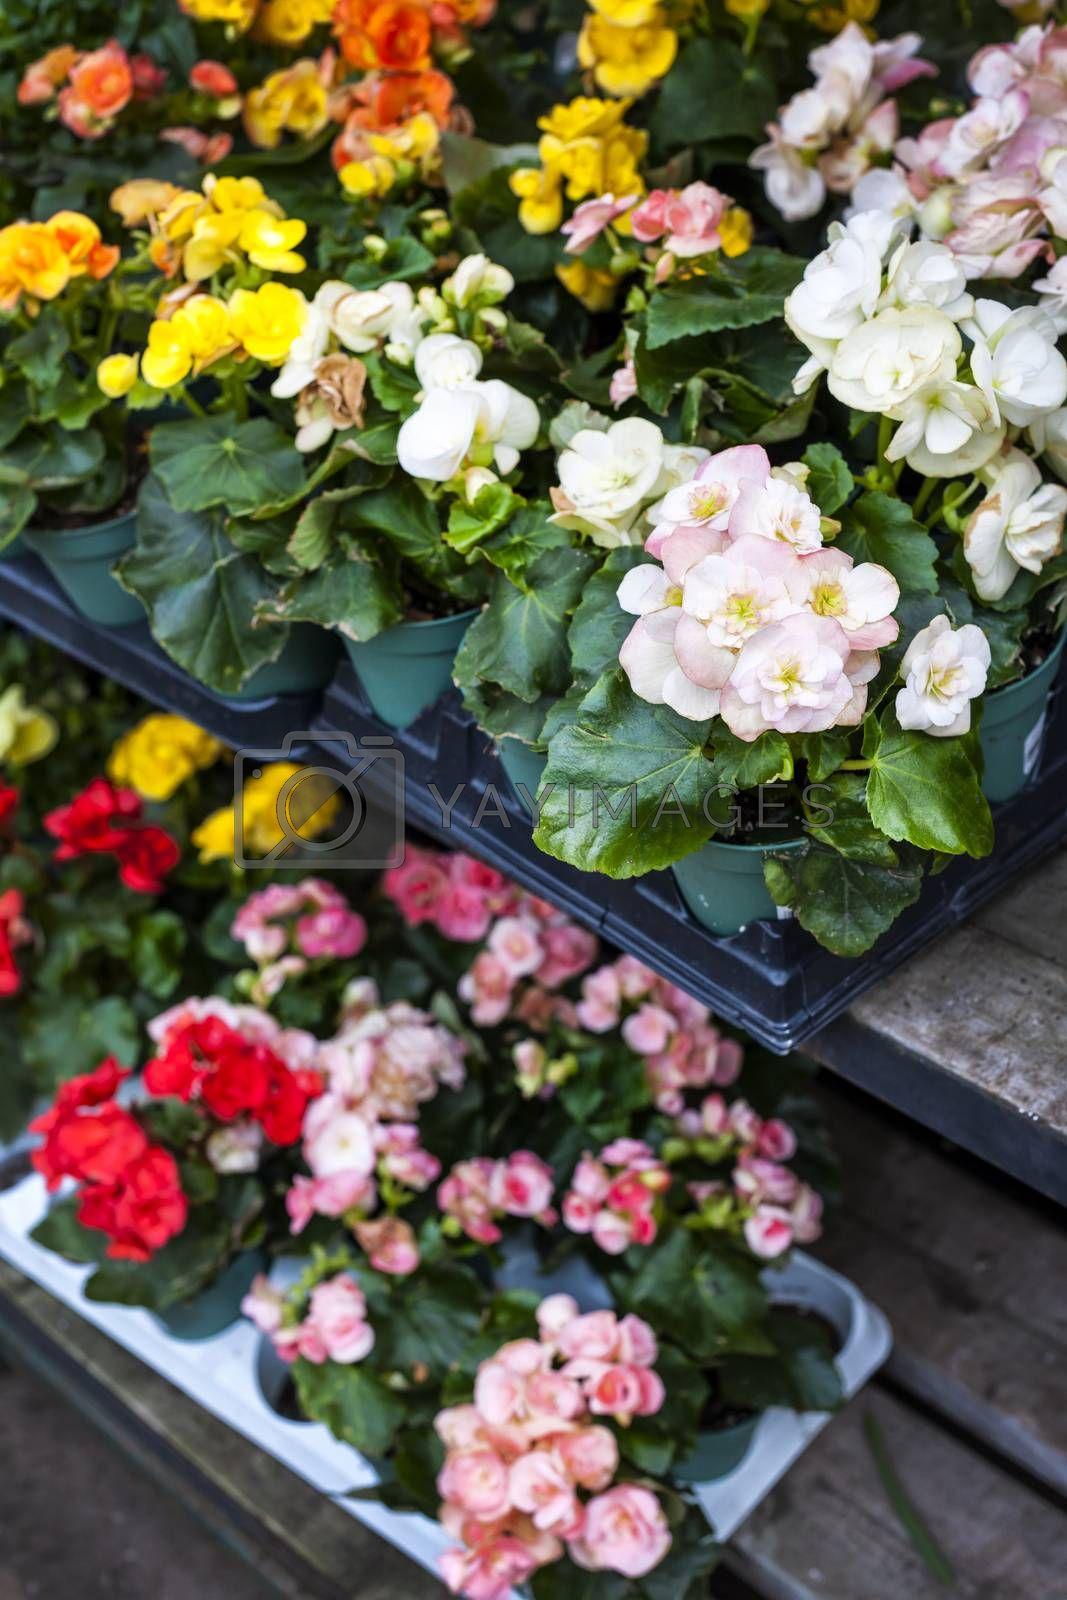 Trays of flowers for sale in plant nursery store